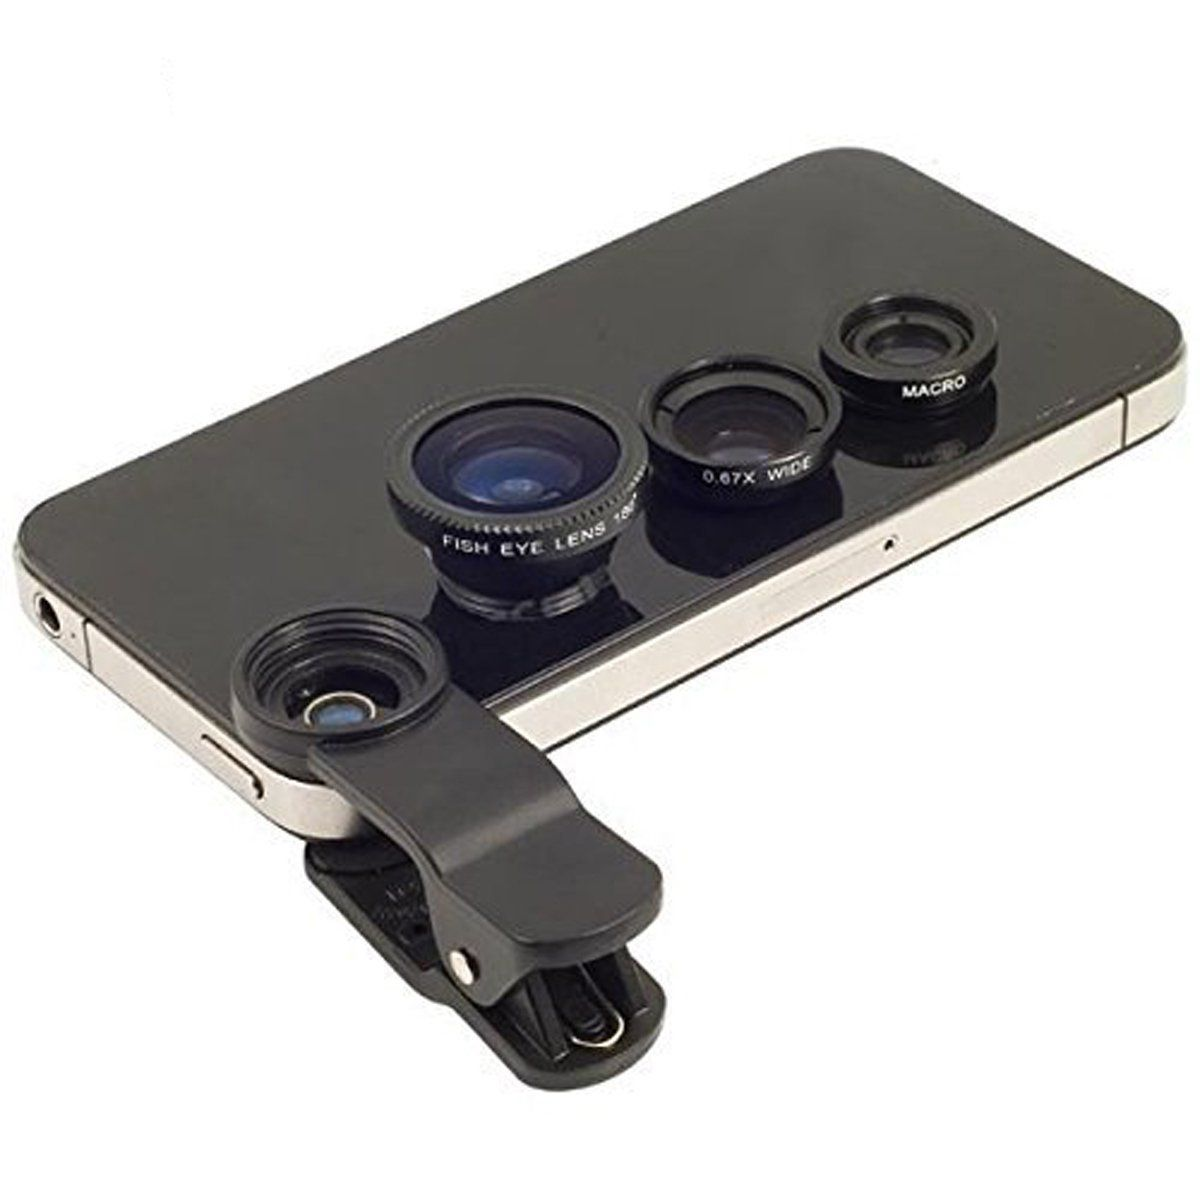 Powerpak 3in1 Universal lens